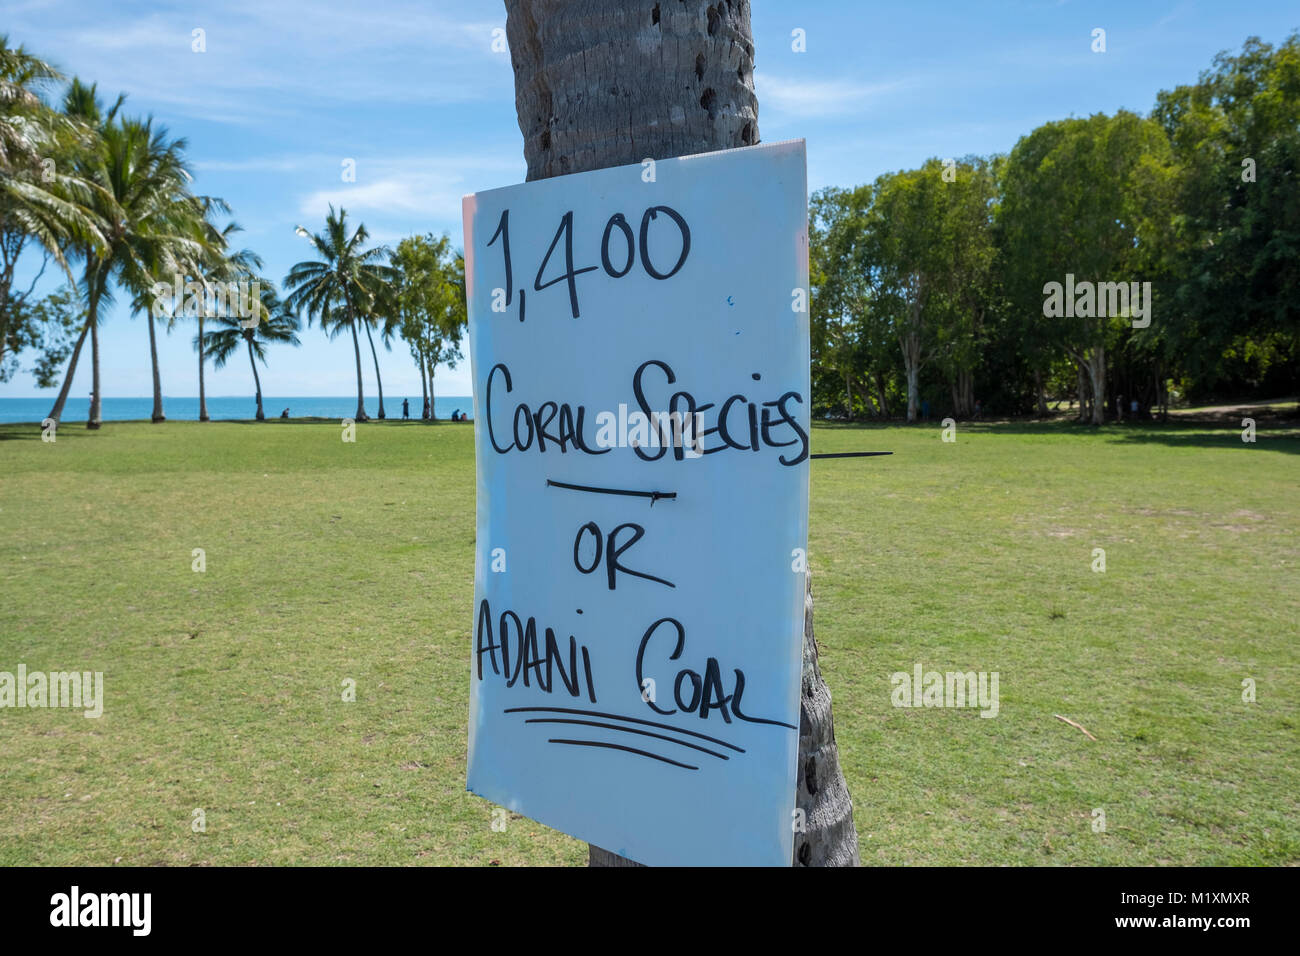 Port Douglas, sign protesting against adani coal mine and risk of damage to the great barrier reef, Queensland,Australia - Stock Image